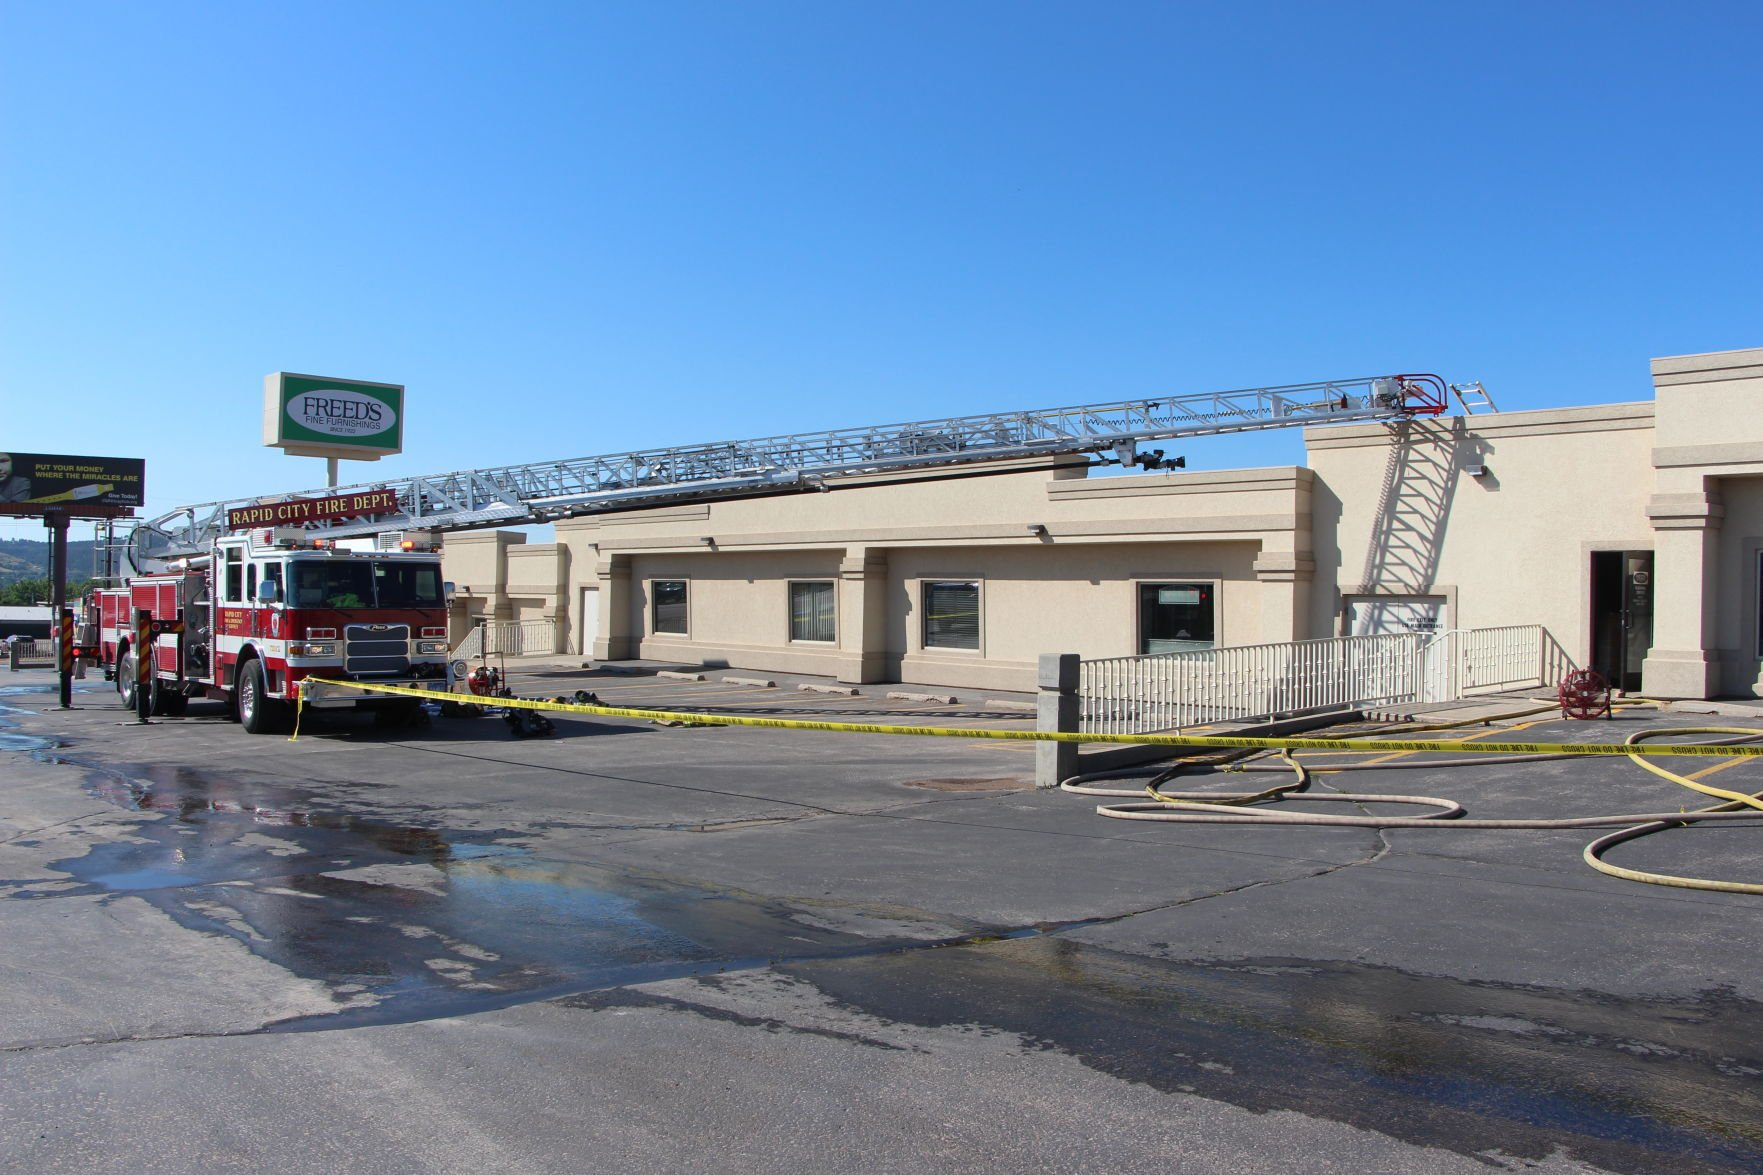 Delicieux Fire Forces Temporary Closure Of Freedu0027s Furniture Store